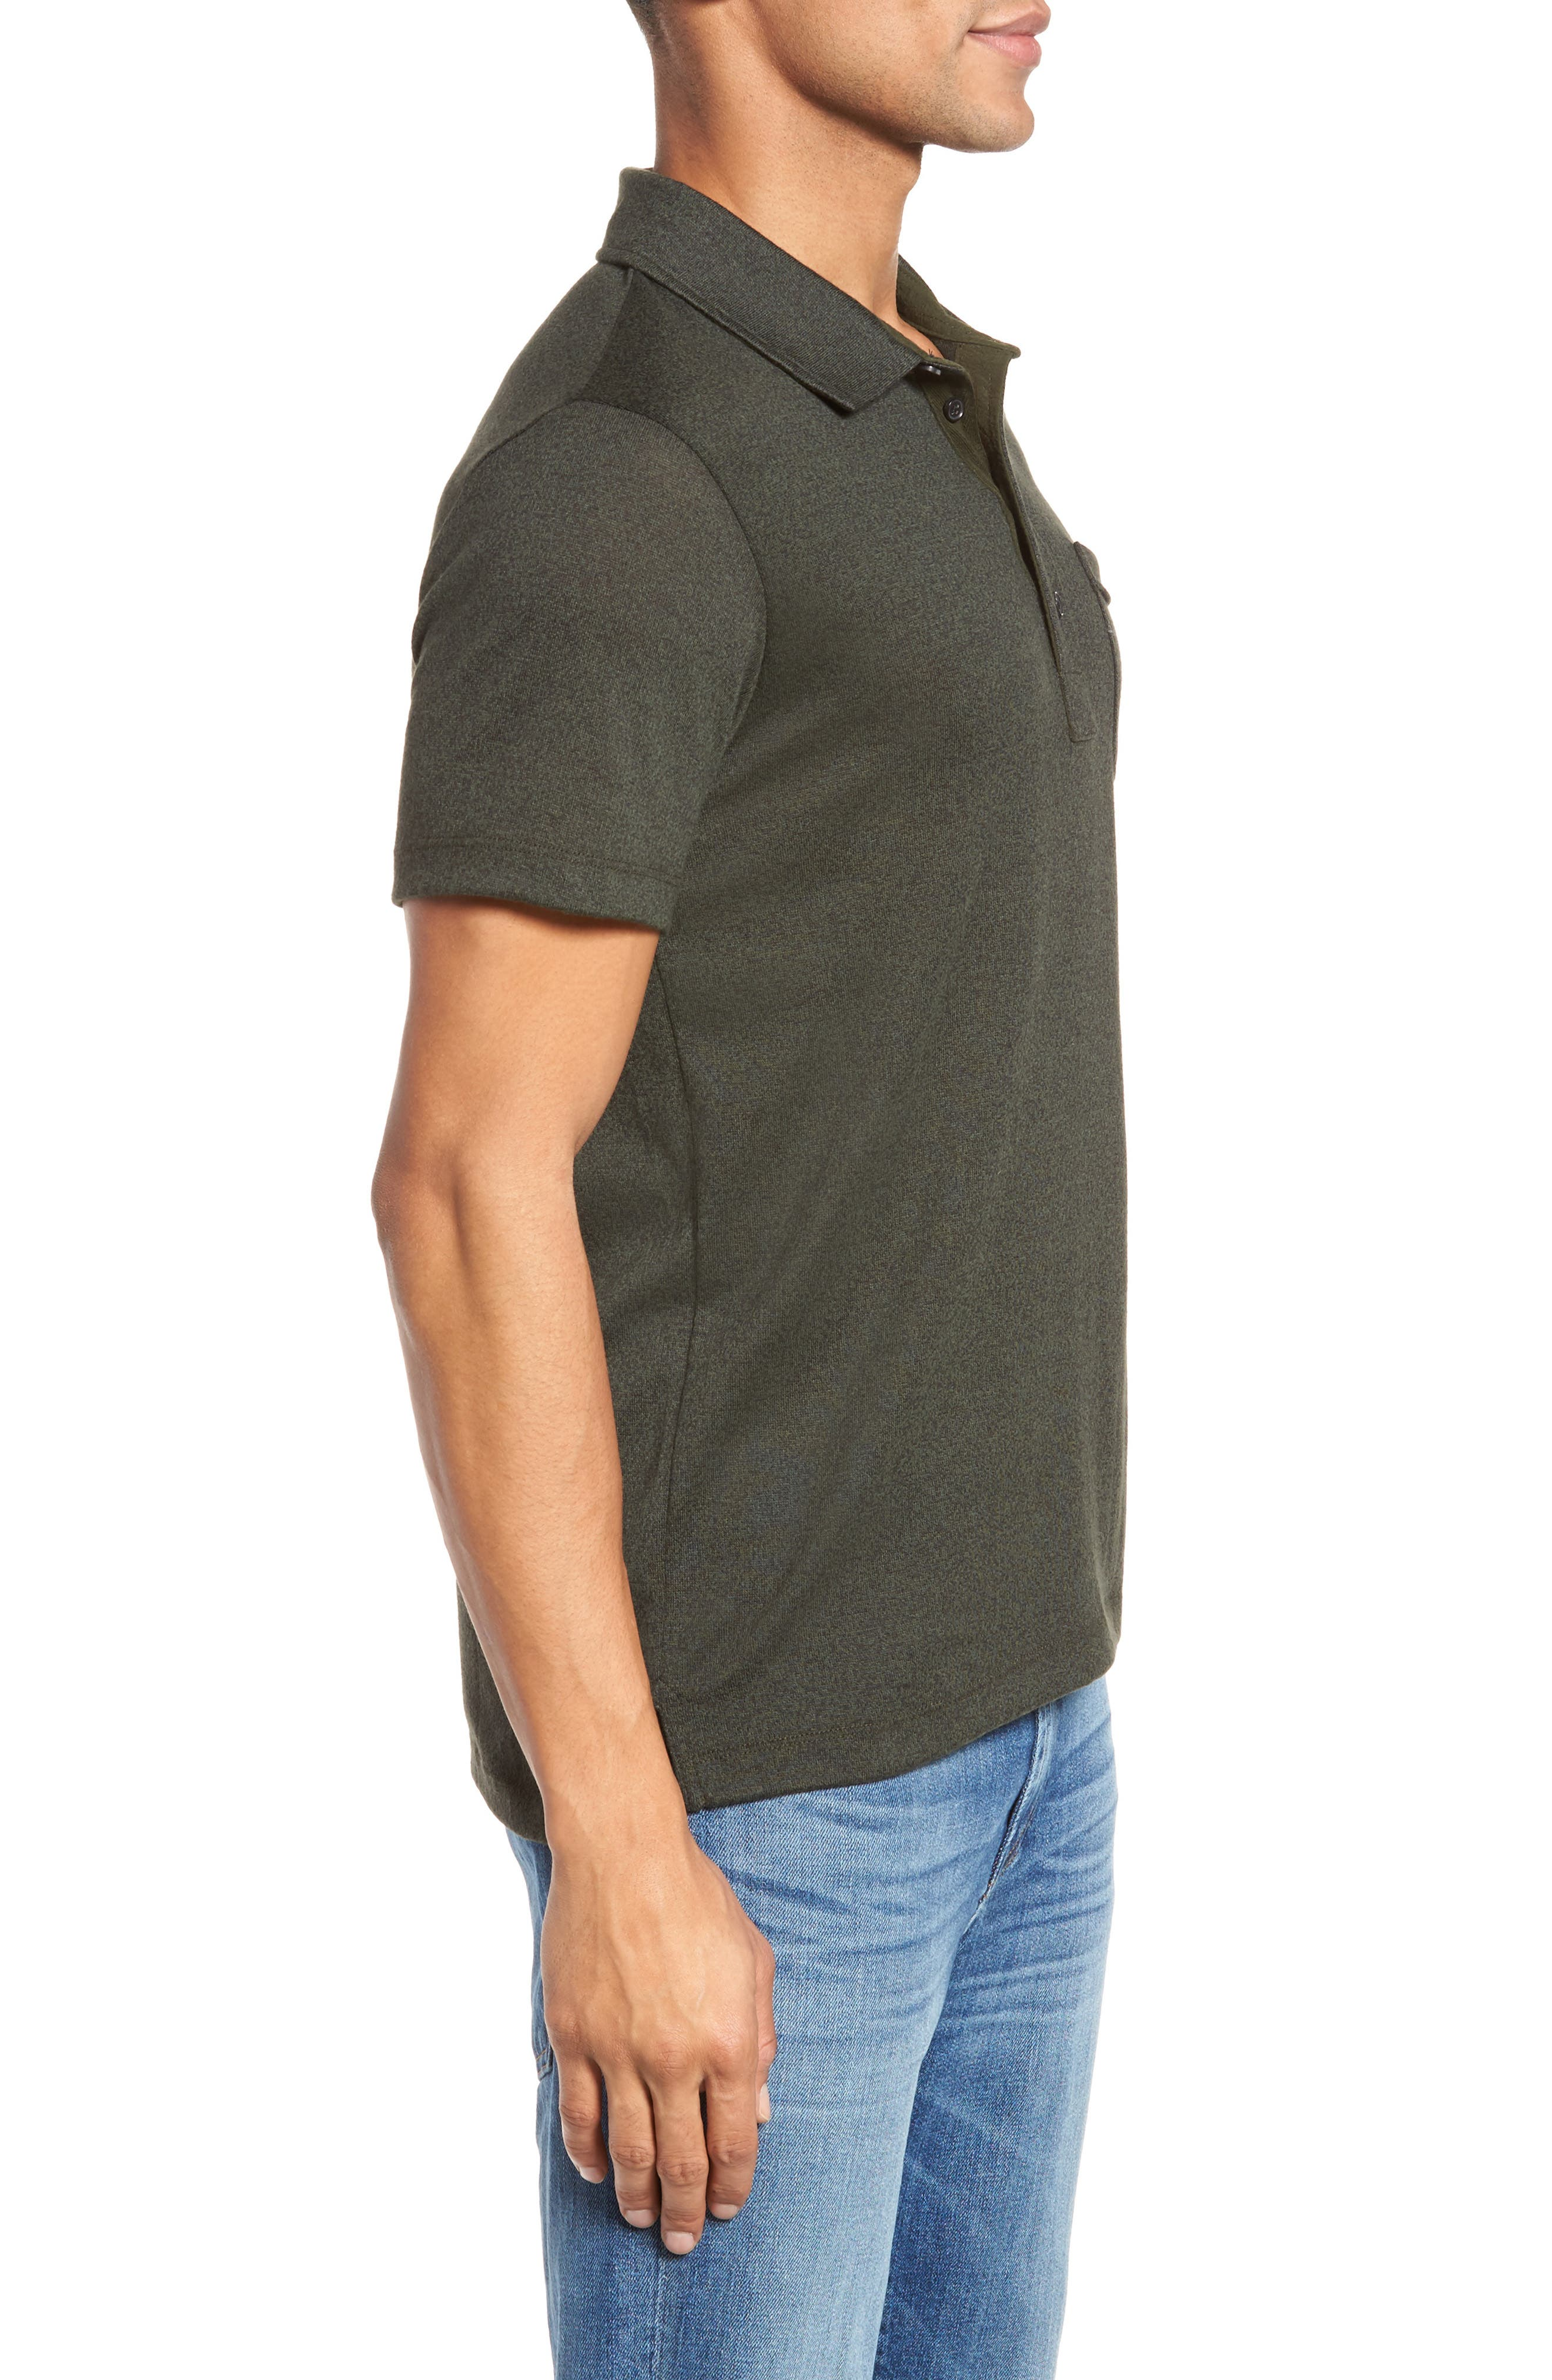 Smith Slim Fit Polo,                             Alternate thumbnail 3, color,                             Pine Green